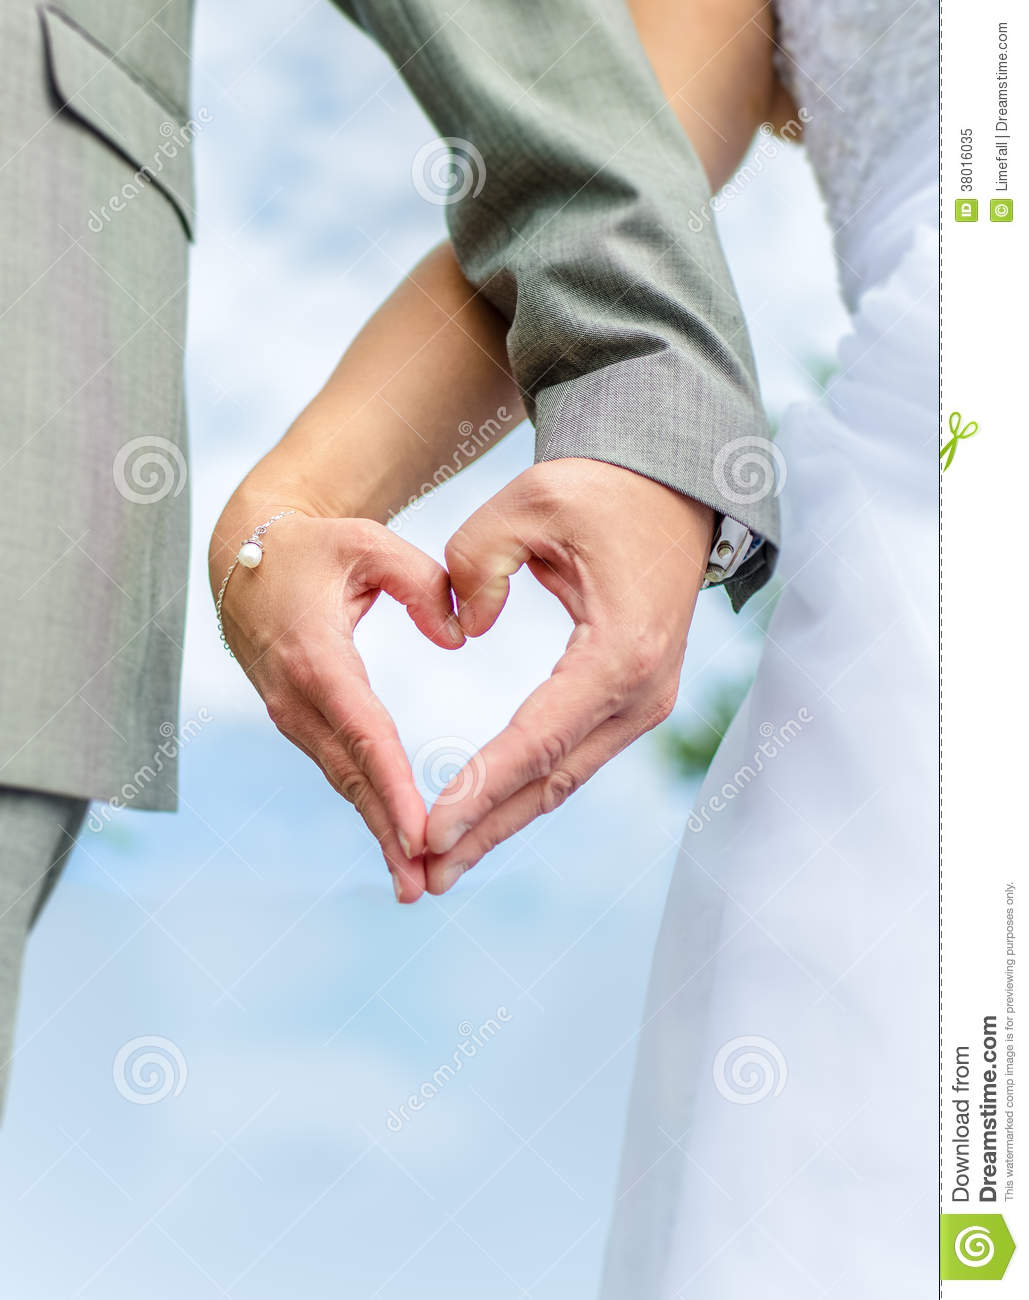 Wedding Couple Hands Royalty Free Stock Photo - Image: 38016035